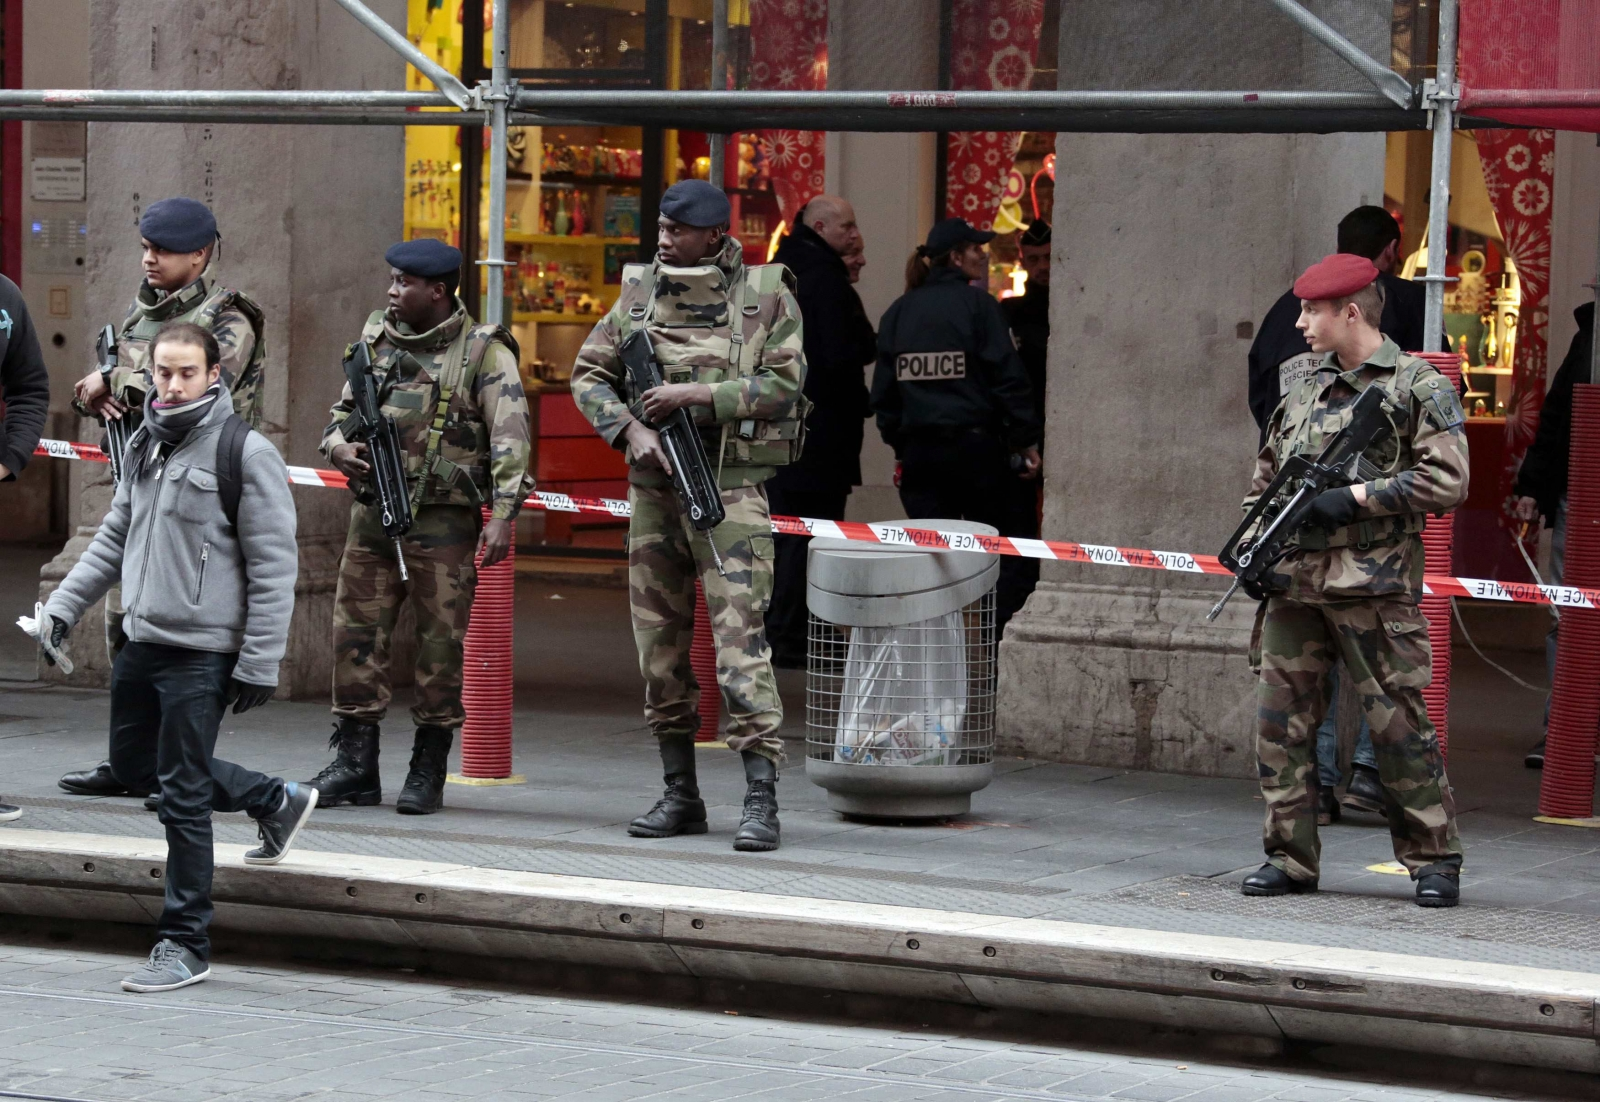 Nice: French soldiers guarding Jewish community centre injured by knife-wielding attacker